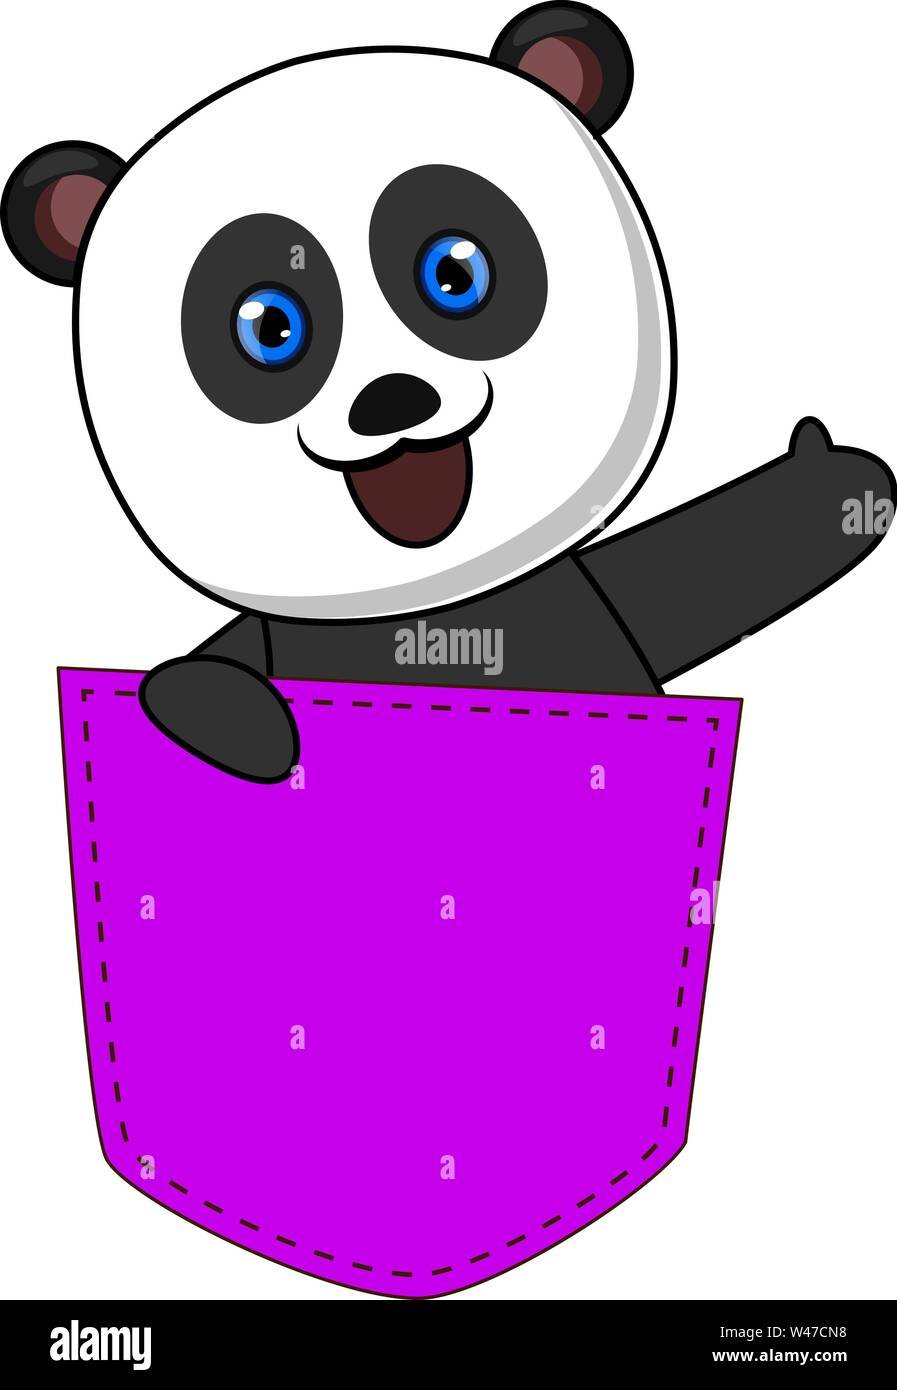 Panda in purple pocket, illustration, vector on white background. - Stock Image